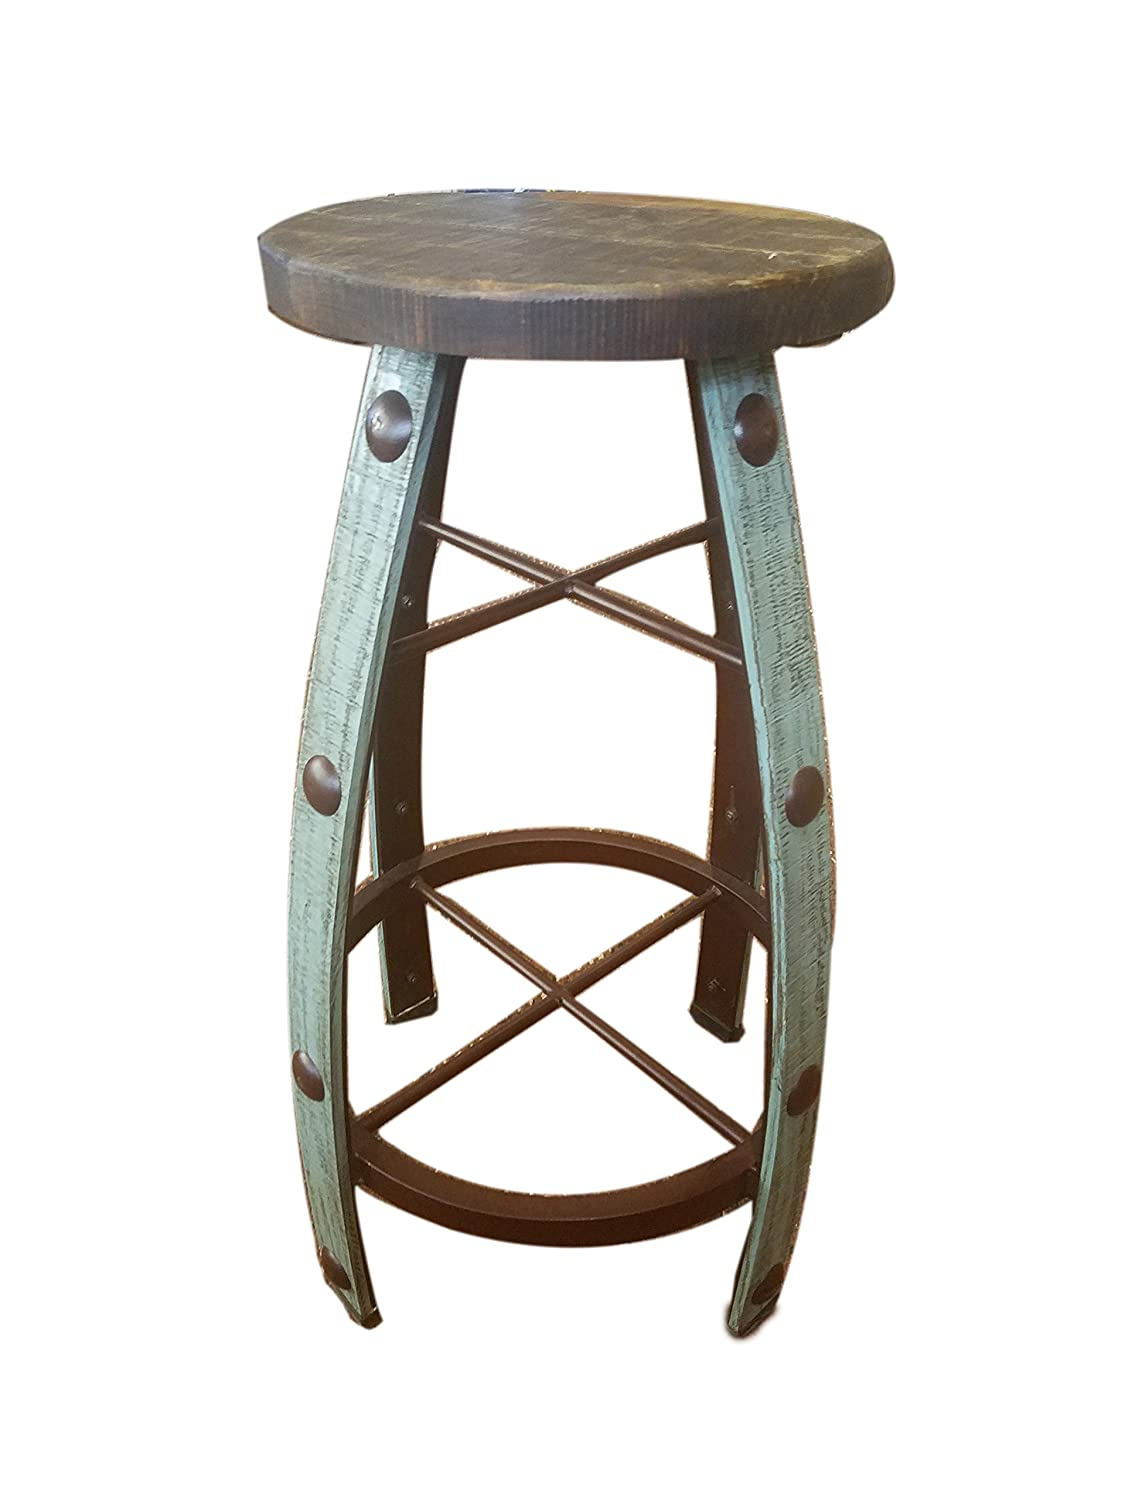 Stupendous Rustic Bar Stool Stave Wine Barrel Wood Seat Ships Already Assembled 30 Inch Turquoise Barrel Style Pdpeps Interior Chair Design Pdpepsorg